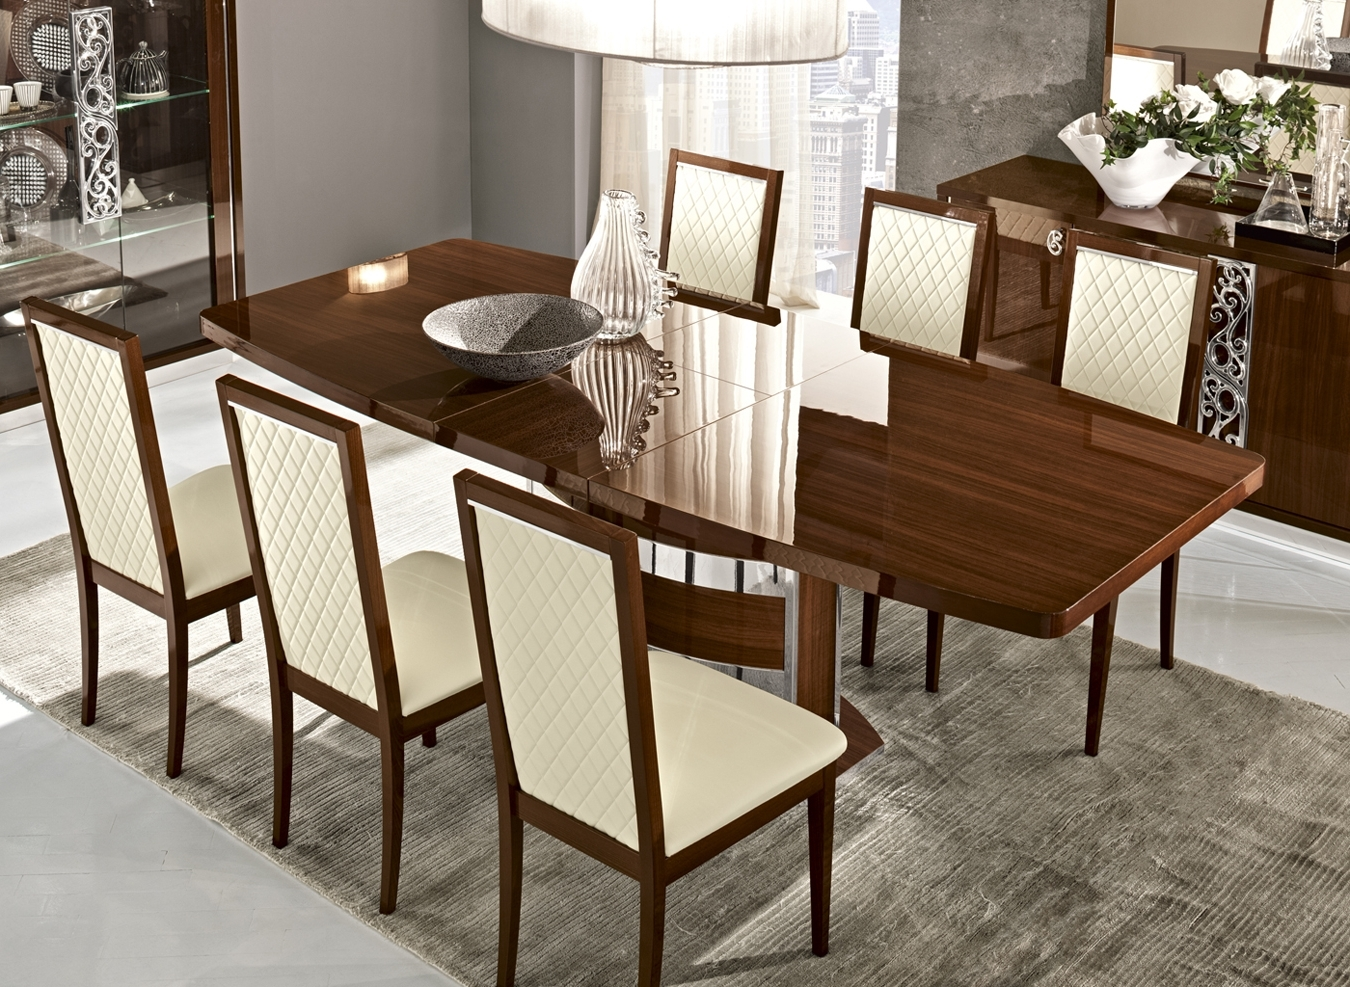 Roma Dining Walnut, Italy, Modern Casual Dining Sets, Dining Room Throughout 2017 Roma Dining Tables (View 8 of 25)